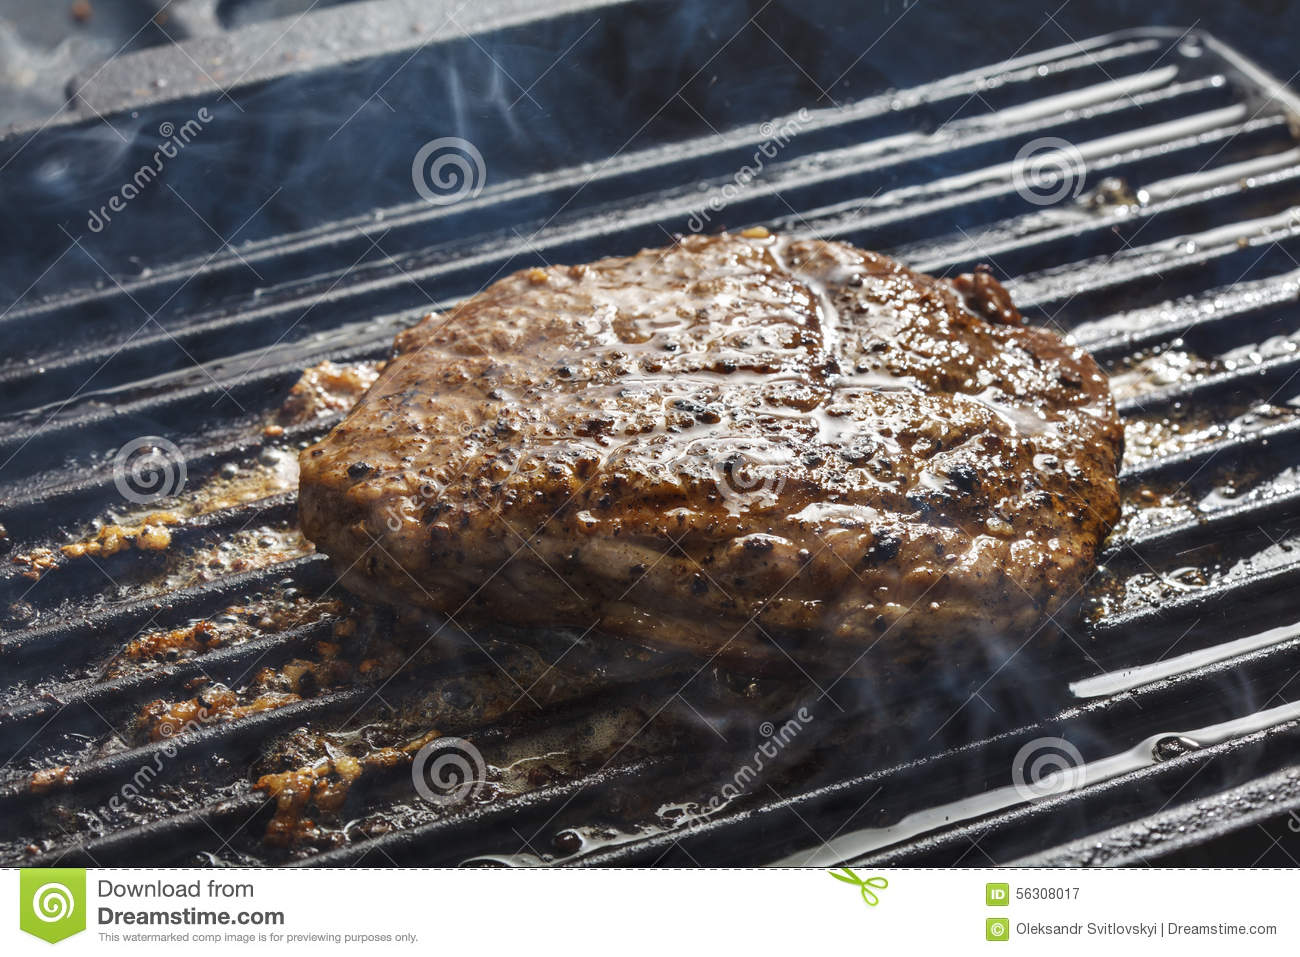 how to cook steak on grill pan